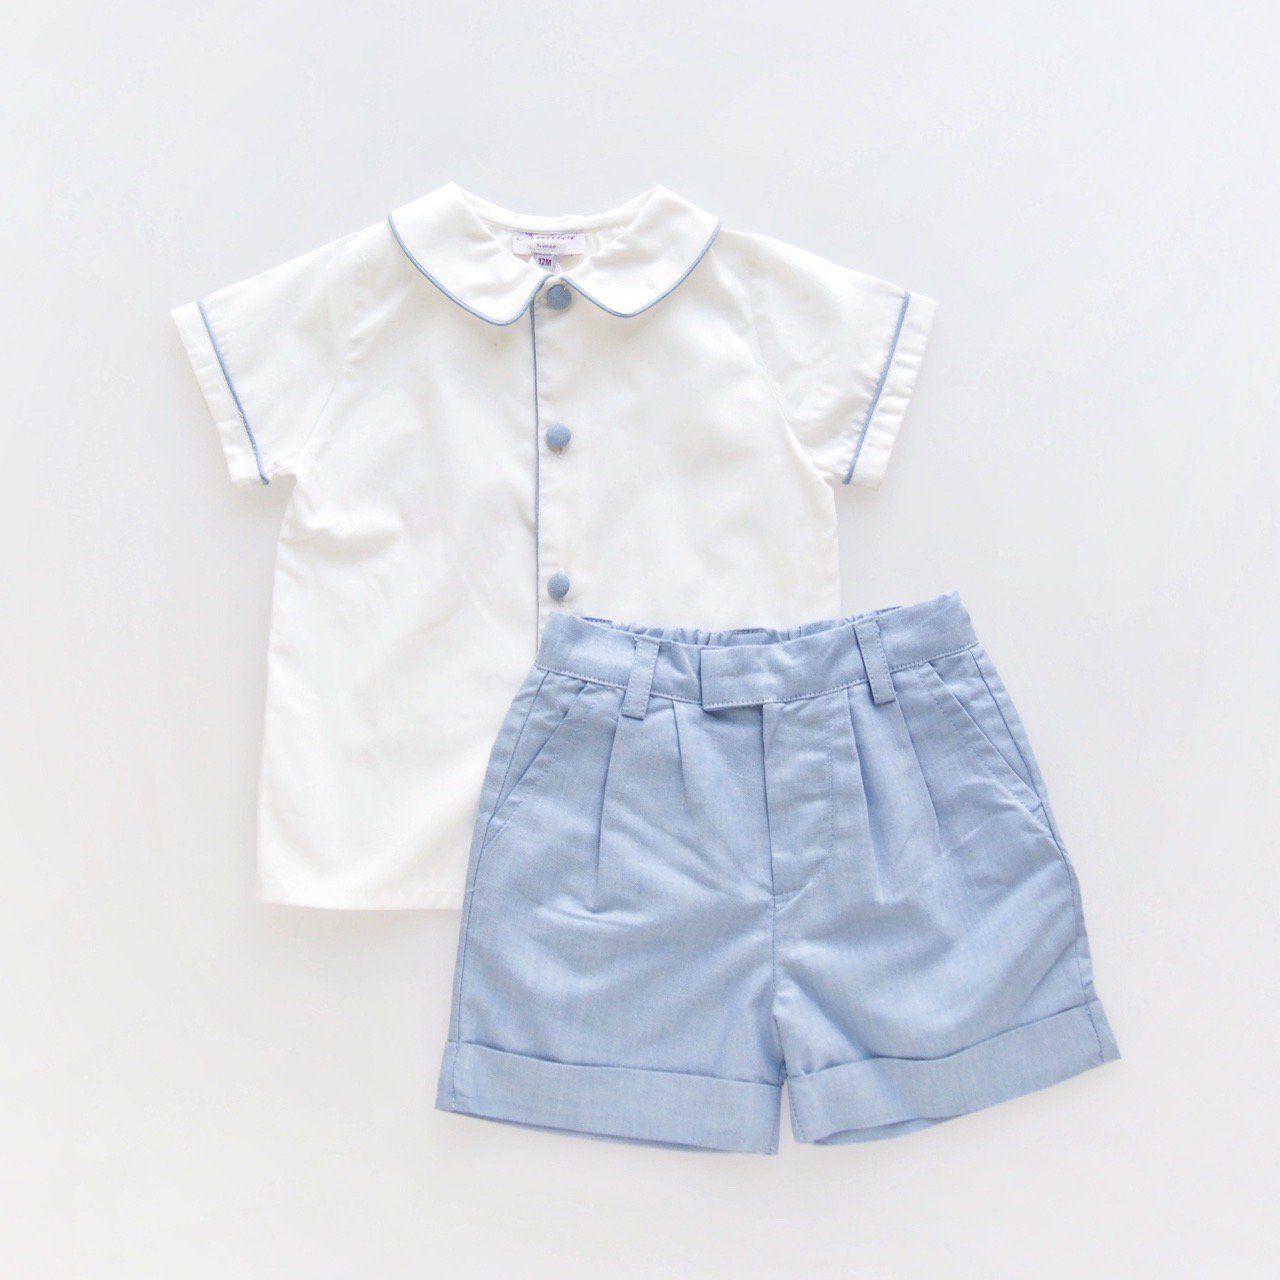 <img class='new_mark_img1' src='https://img.shop-pro.jp/img/new/icons14.gif' style='border:none;display:inline;margin:0px;padding:0px;width:auto;' />Kidiwi - ARMAND boy's shirt and shorts set (Blue dungaree)